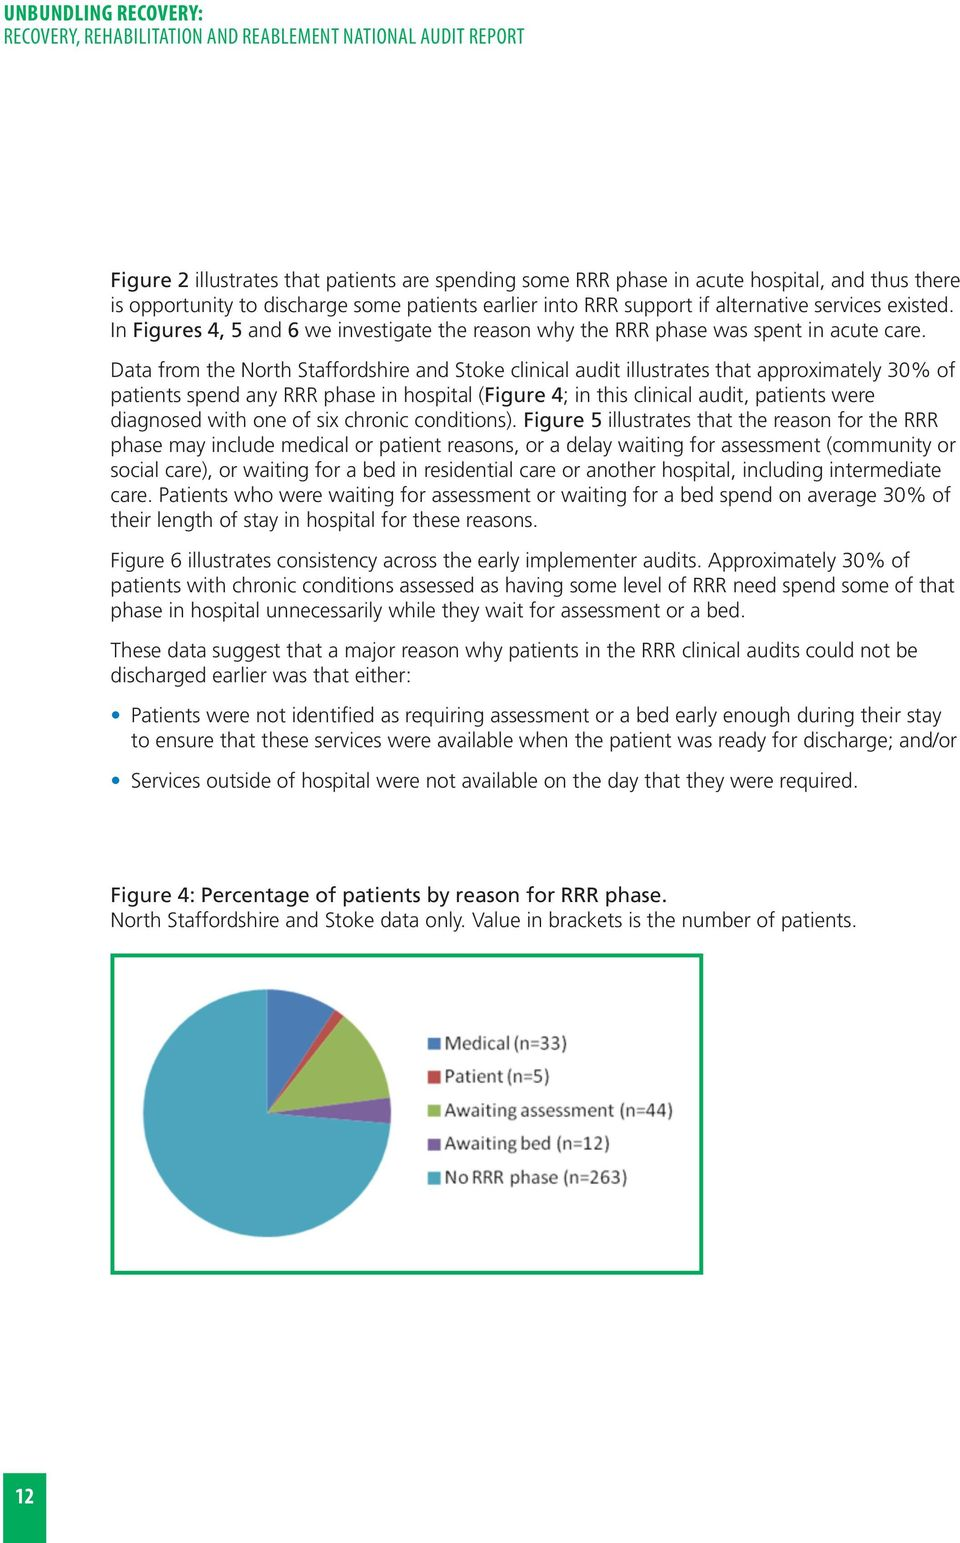 Data from the North Staffordshire and Stoke clinical audit illustrates that approximately 30% of patients spend any RRR phase in hospital (Figure 4; in this clinical audit, patients were diagnosed